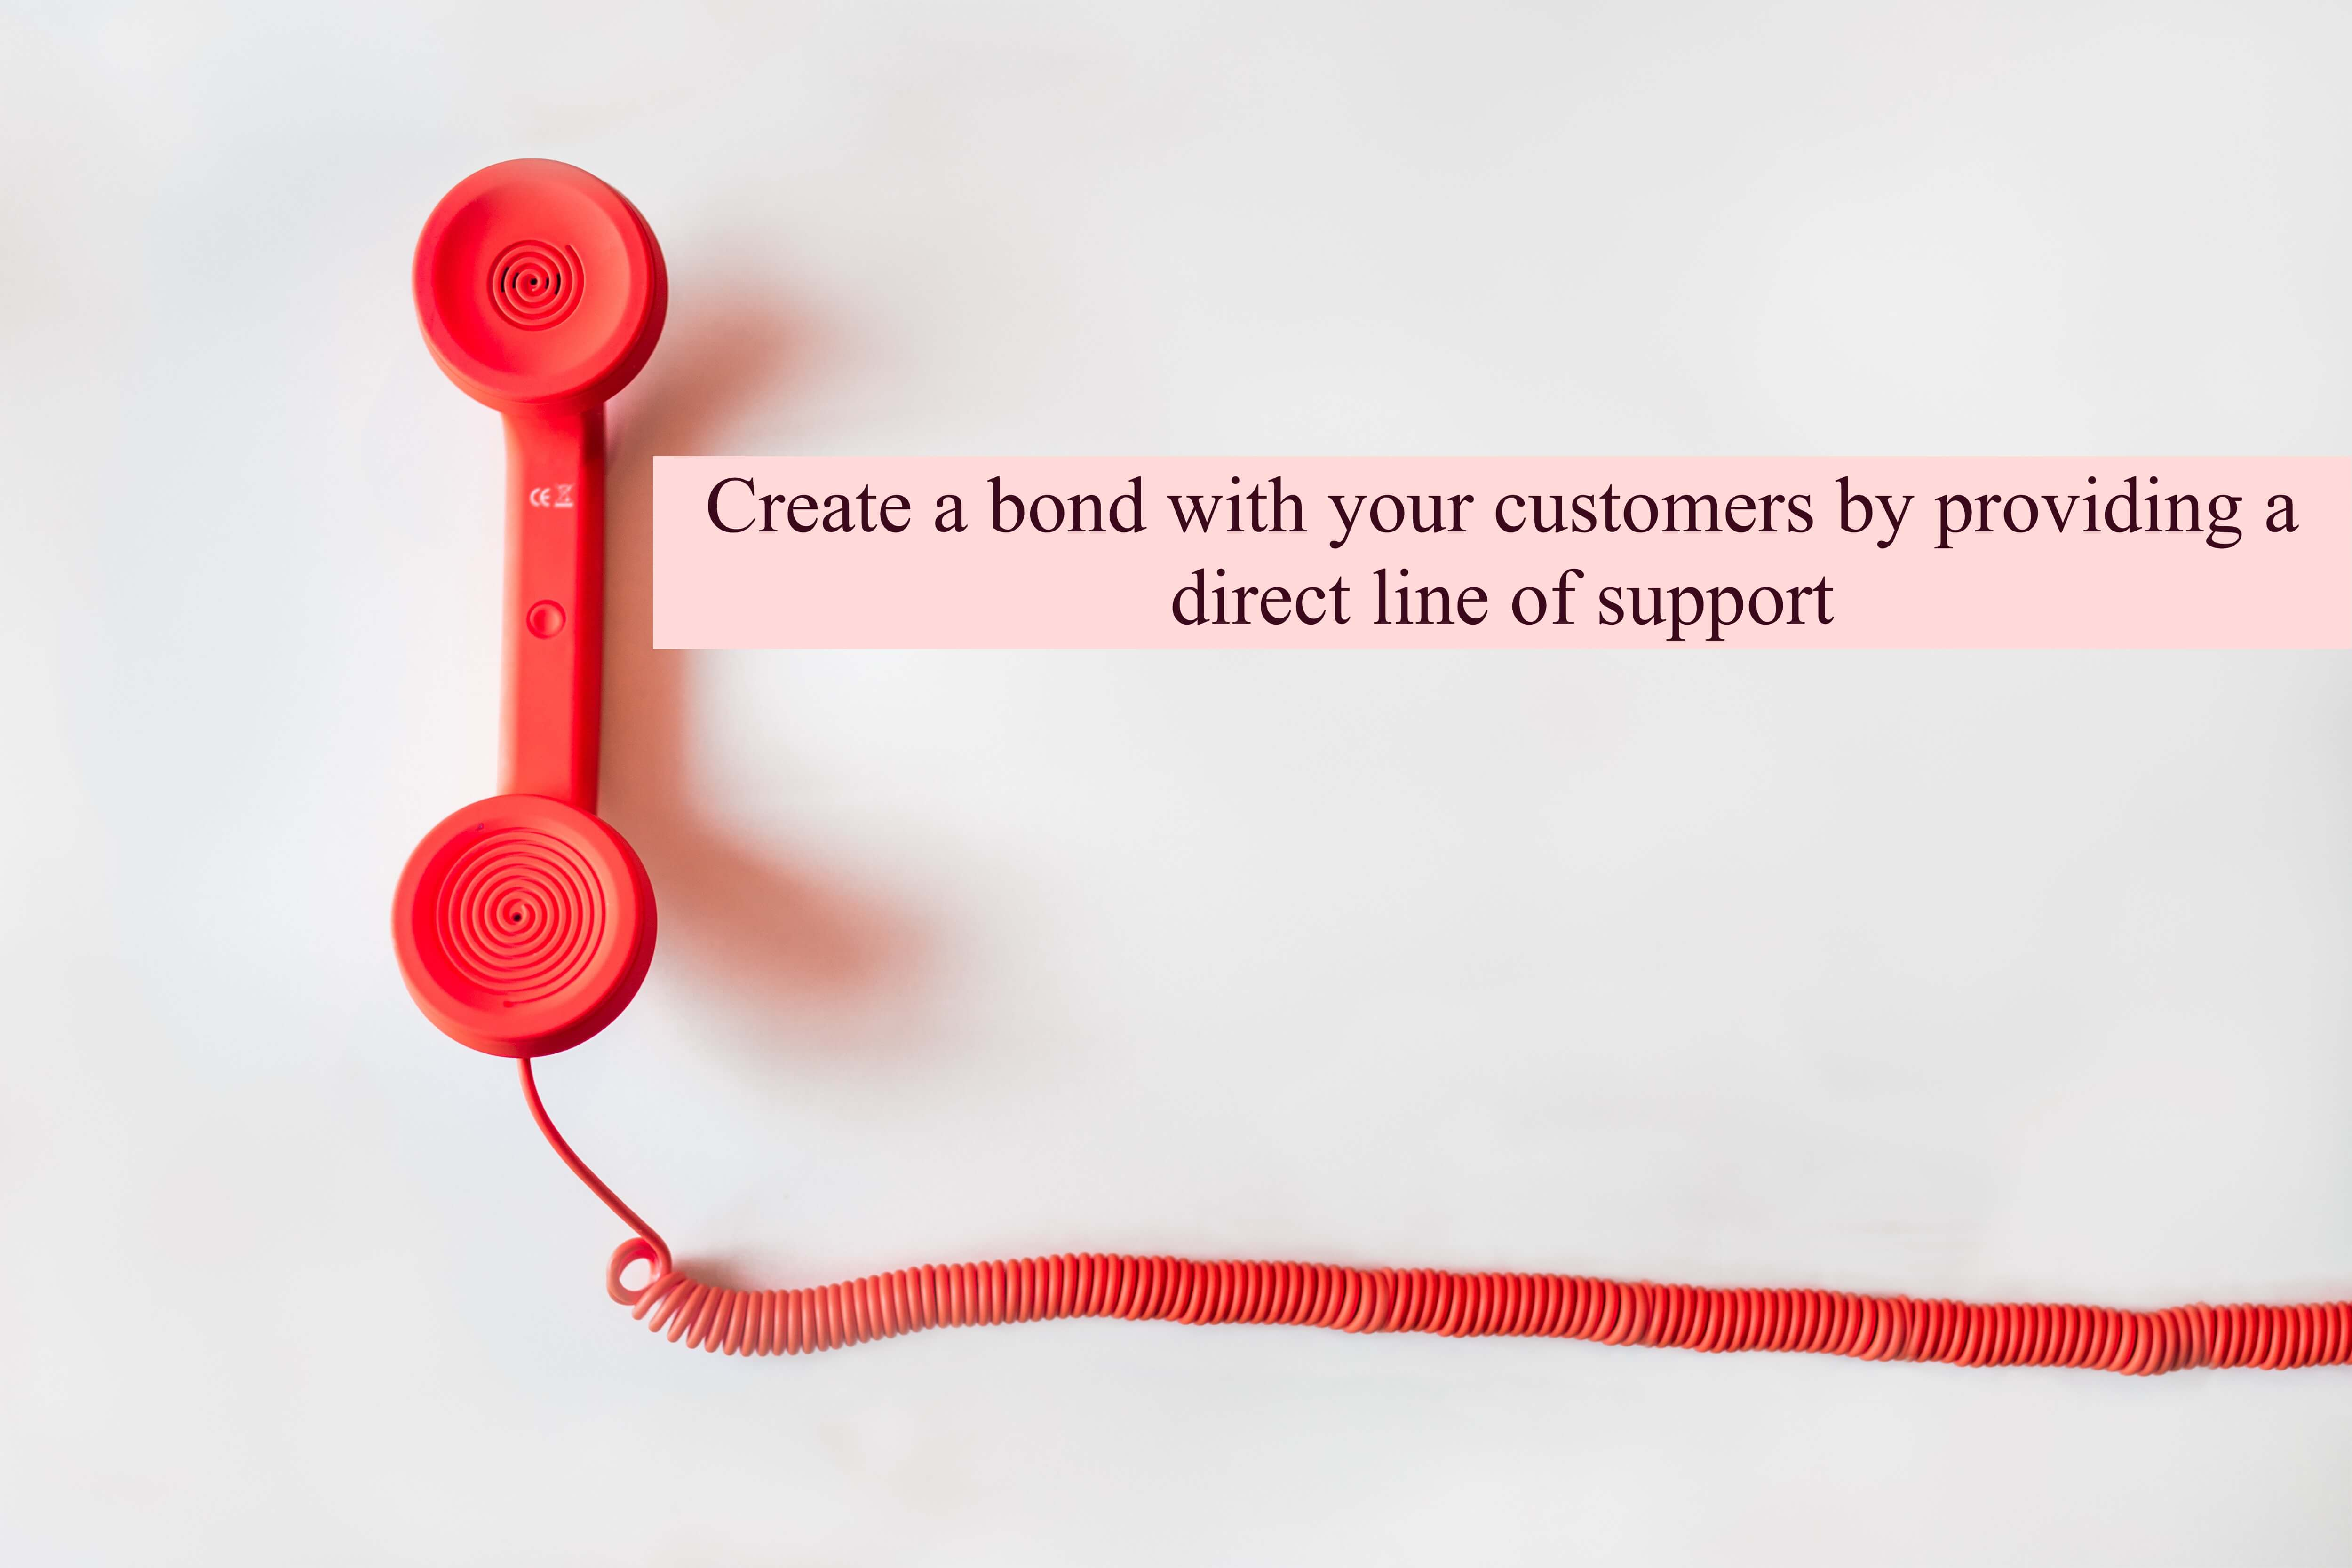 Providing a direct line of support will reduce the time taken for the customer to get help in the future, but it creates a bond as well.